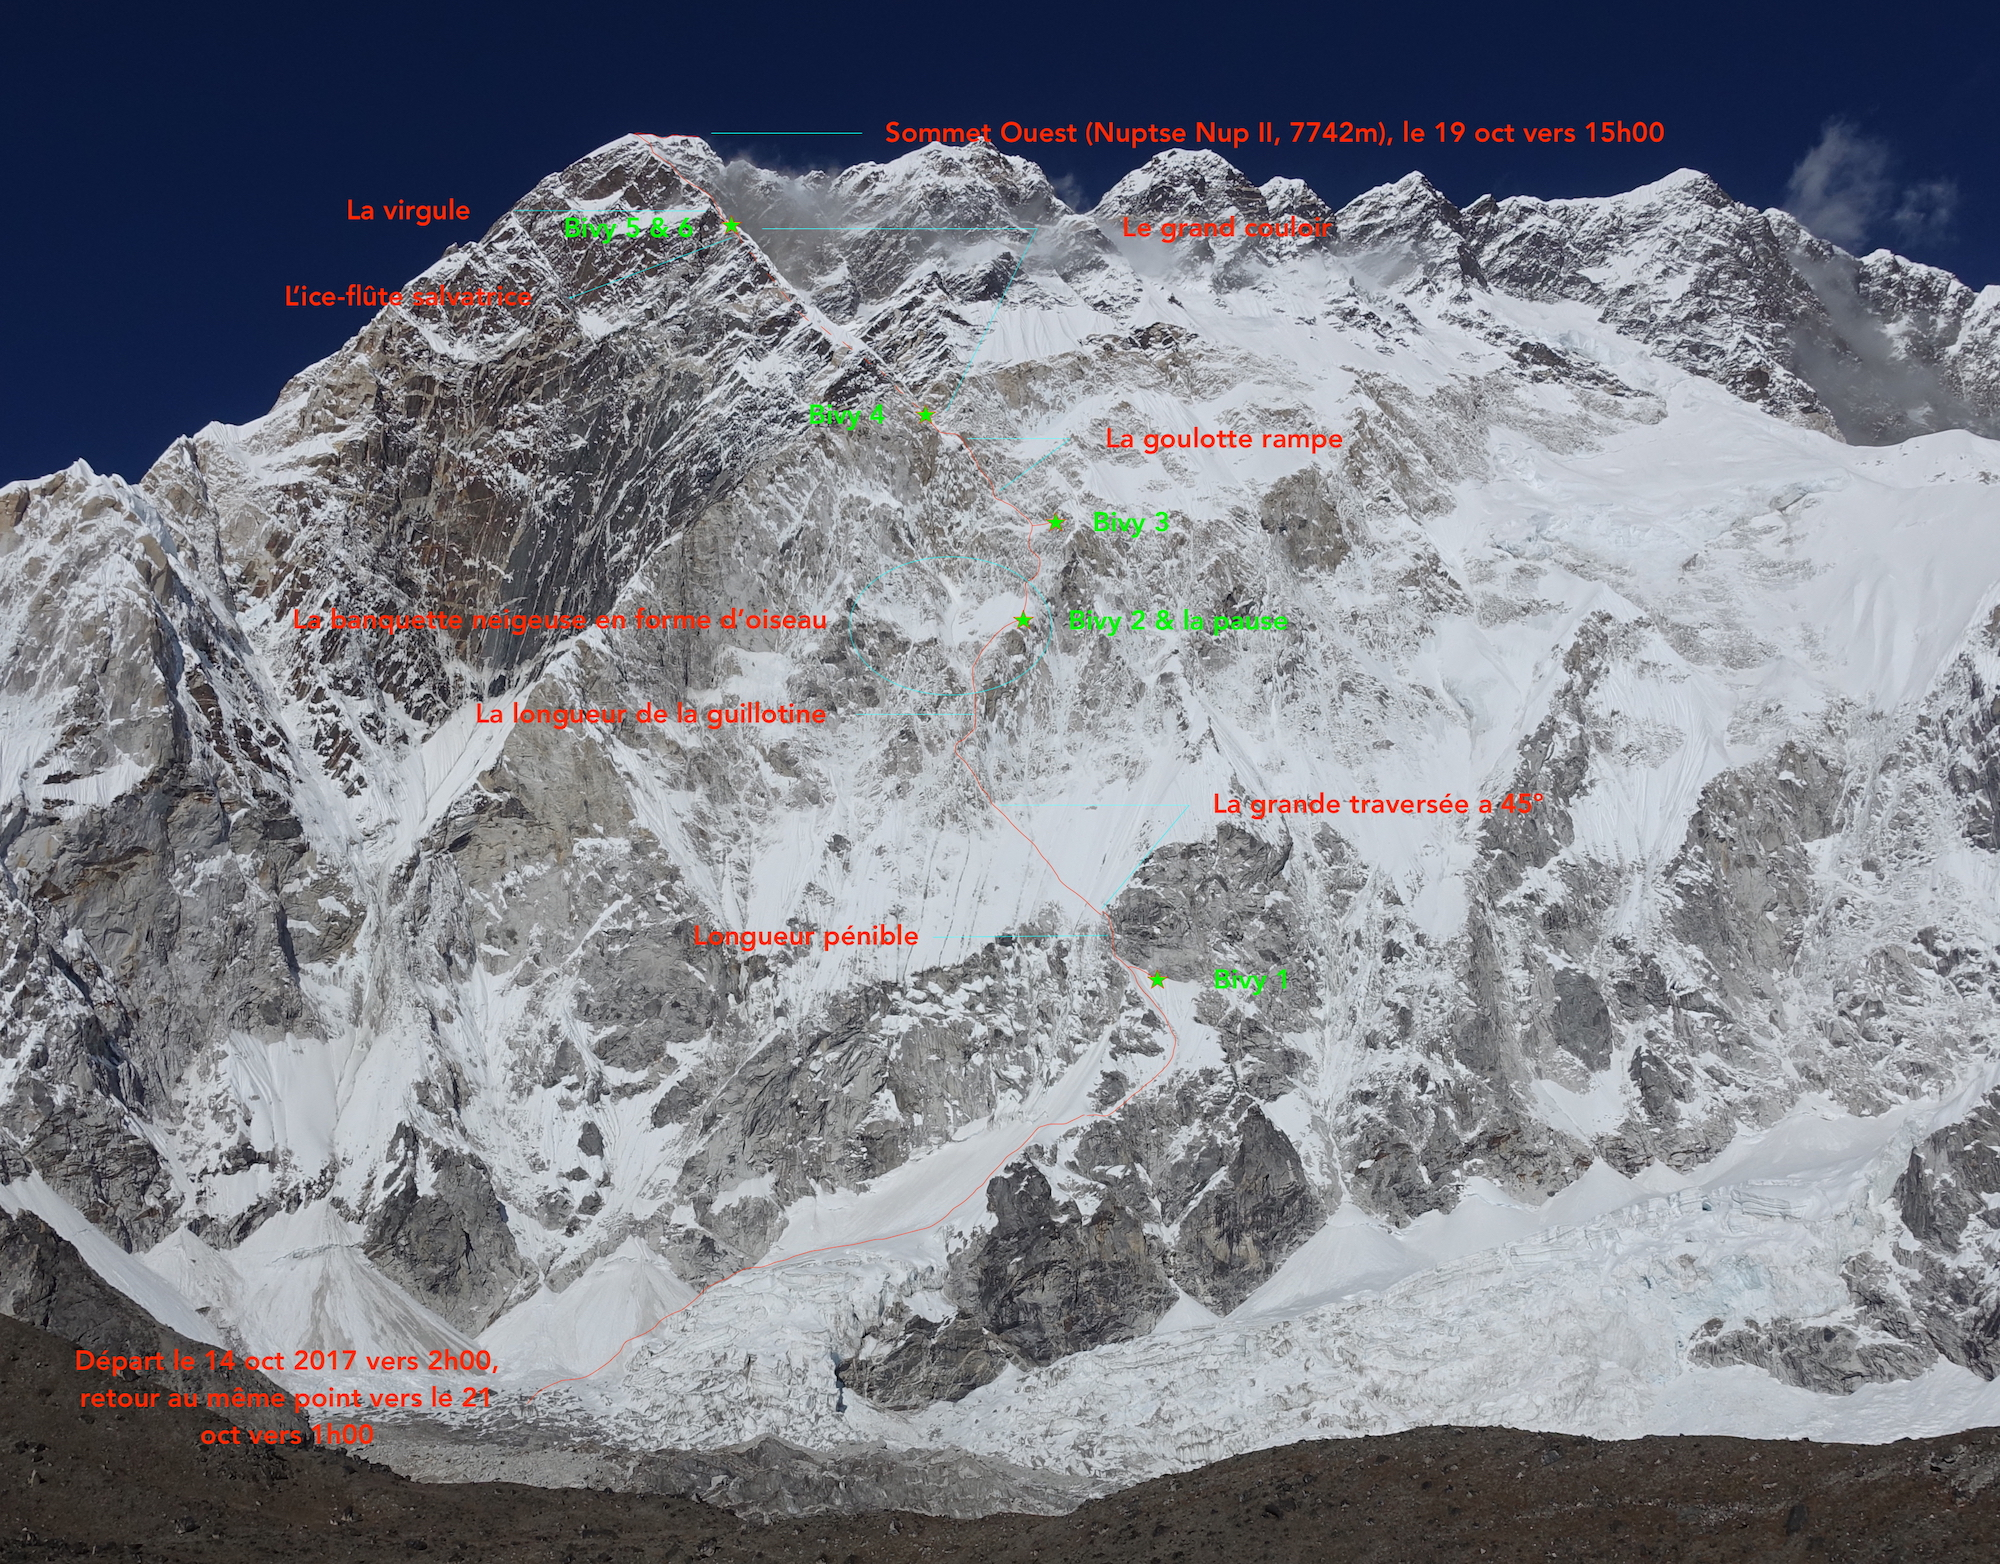 The south face of Nuptse with the new route marked by the thin red line. [Photo] Courtesy of Helias Millerioux, Benjamin Guigonnet, Frederic Degoulet